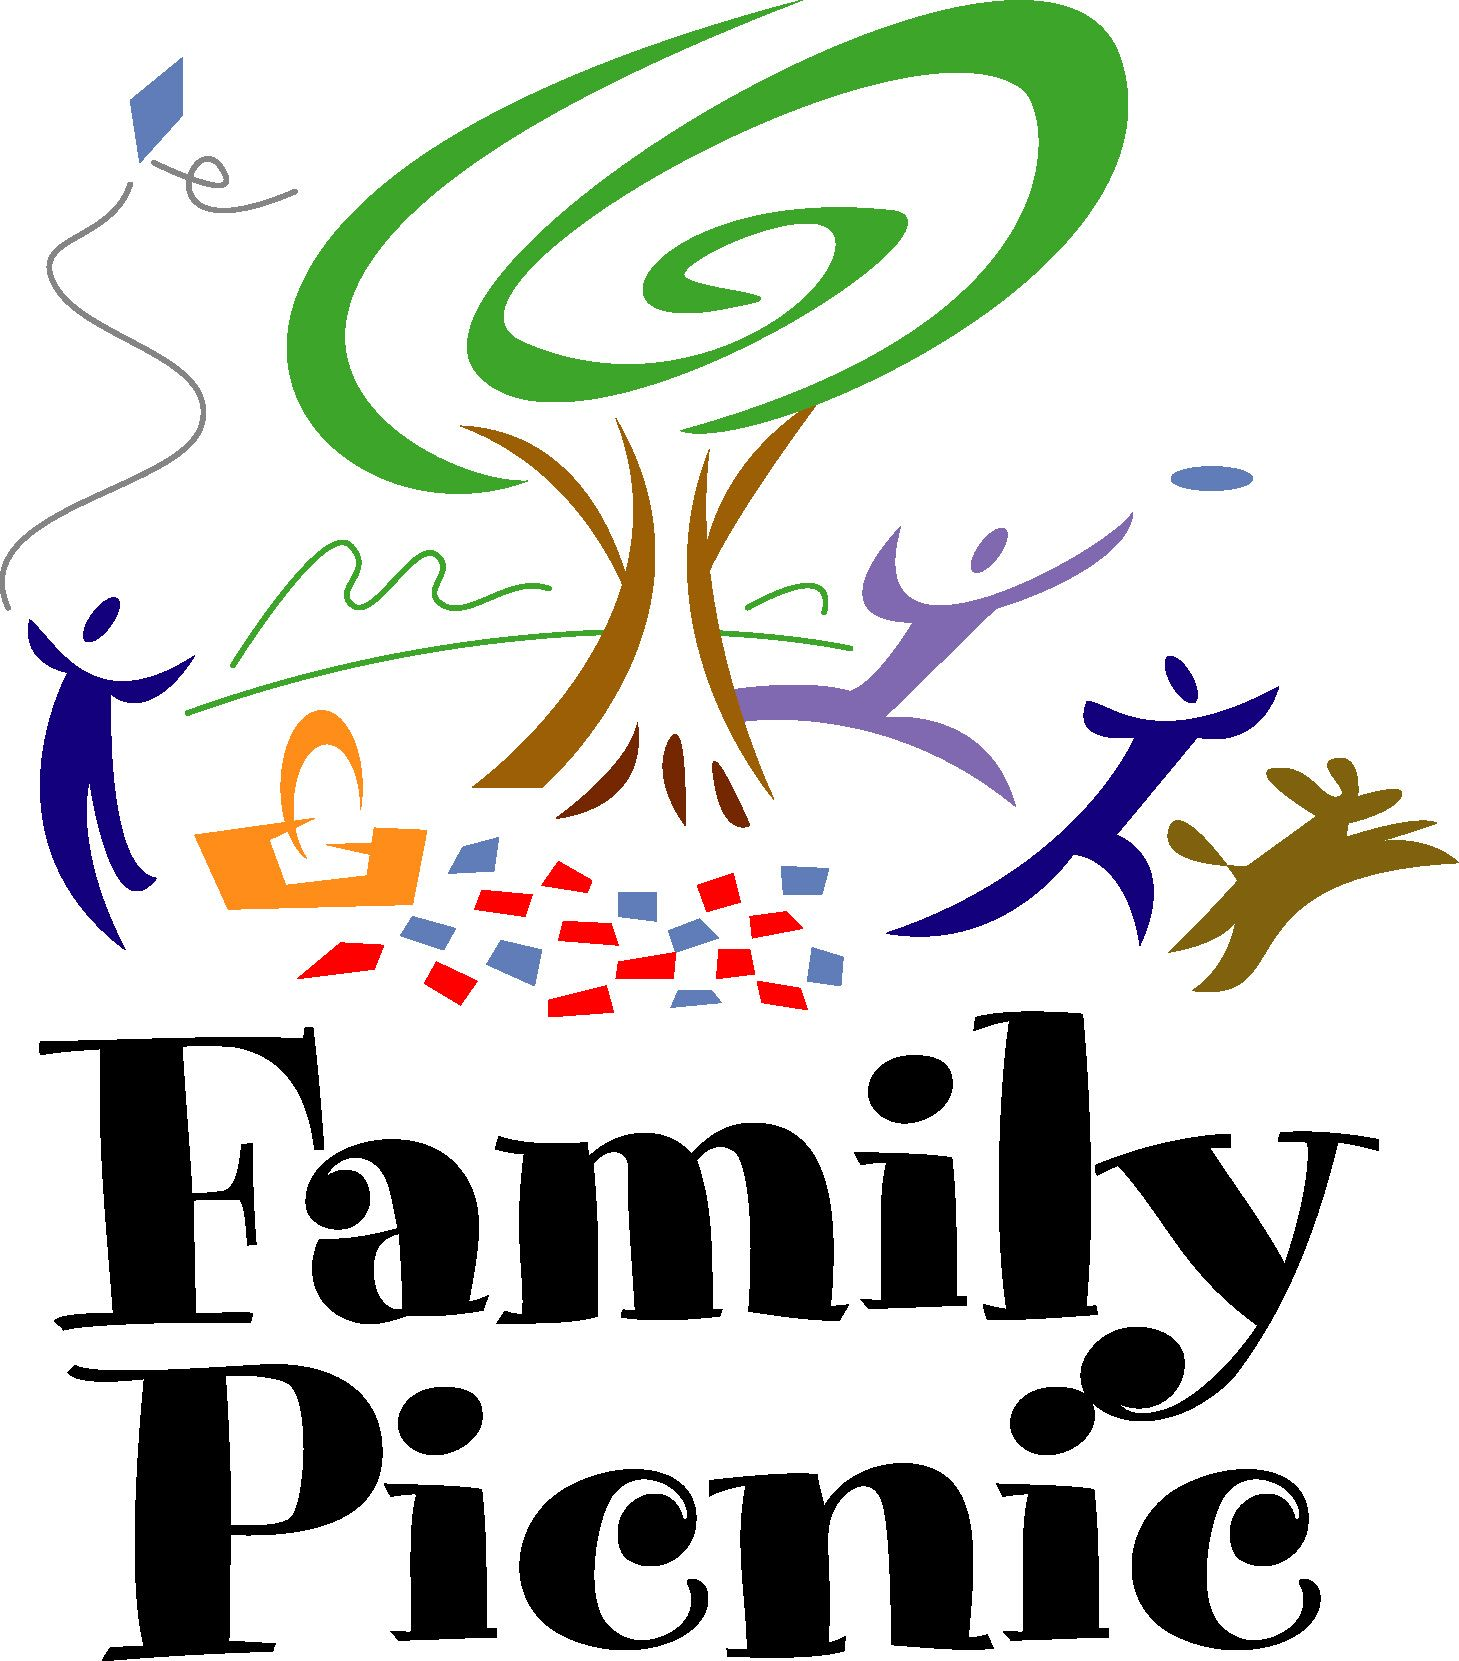 picnic clip art free lettering samples pinterest family picnic rh pinterest com free picnic clipart borders free picnic clipart and borders